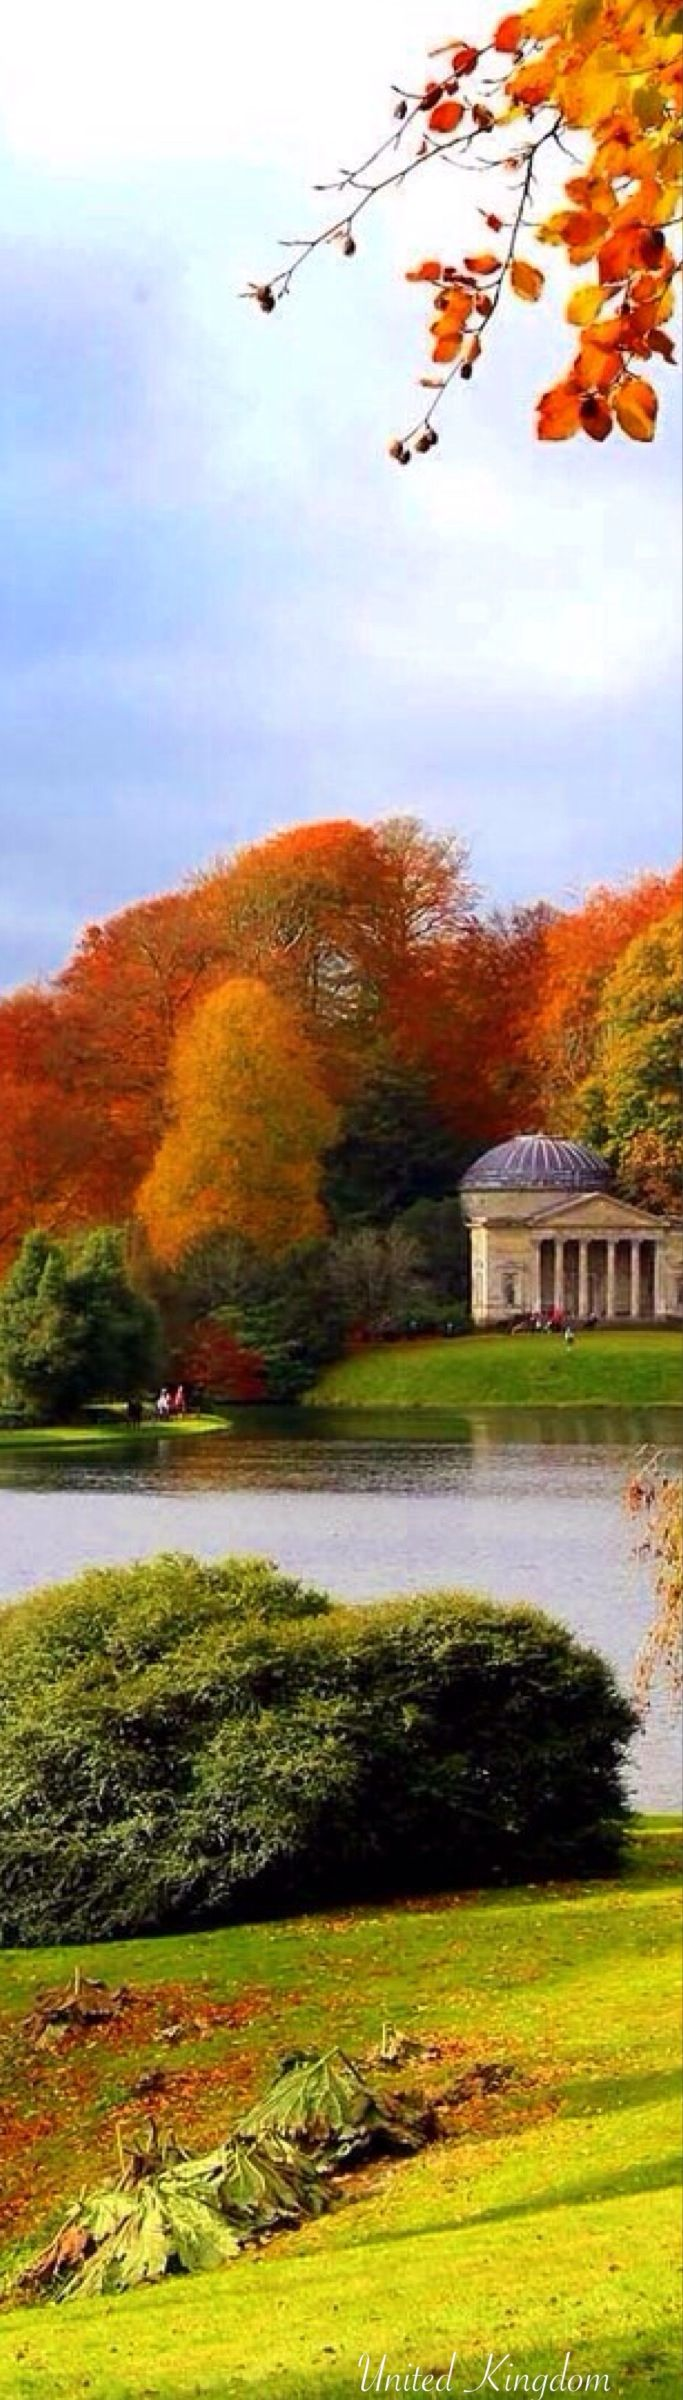 'No Spring nor Summer beauty hath such grace as I have seen in one Autumnal face ... ' John Donne (1572-1631)